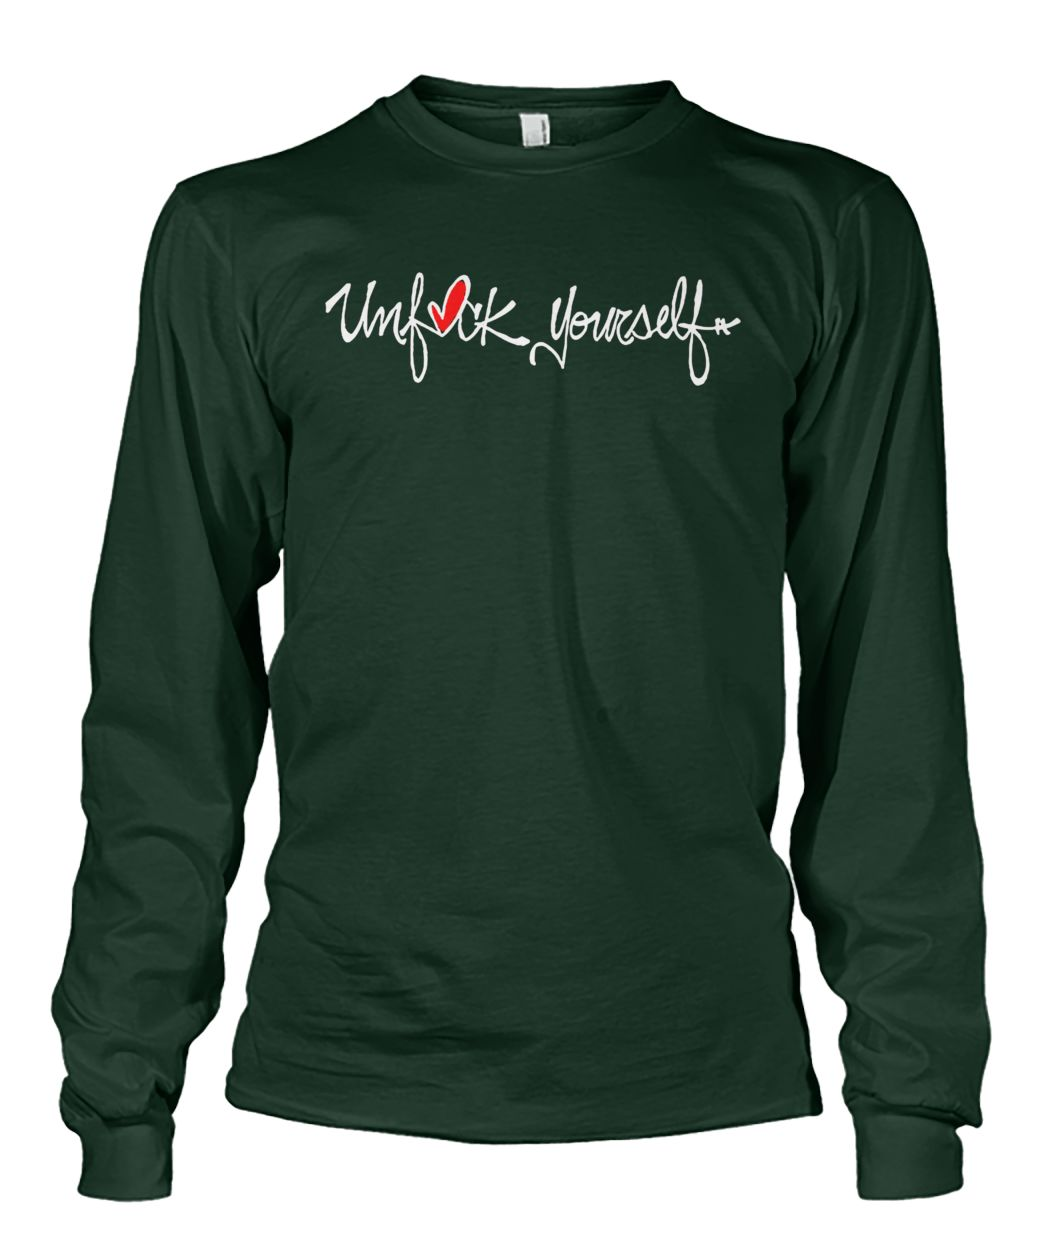 The original unfuck yourself unisex long sleeve